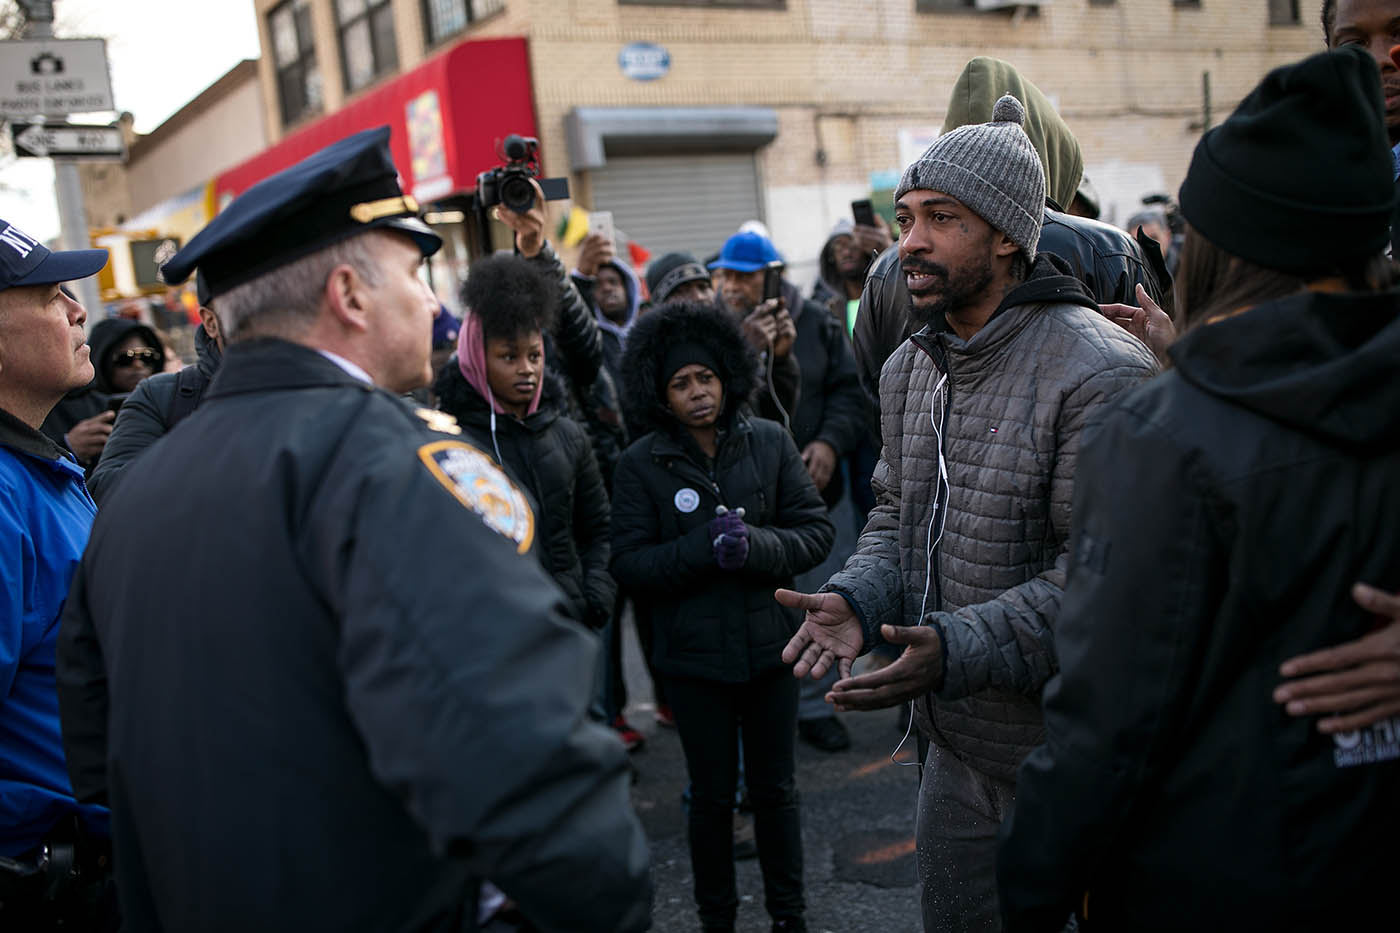 Police Encounters During Mental Health Crises Don't Have to Be Violent